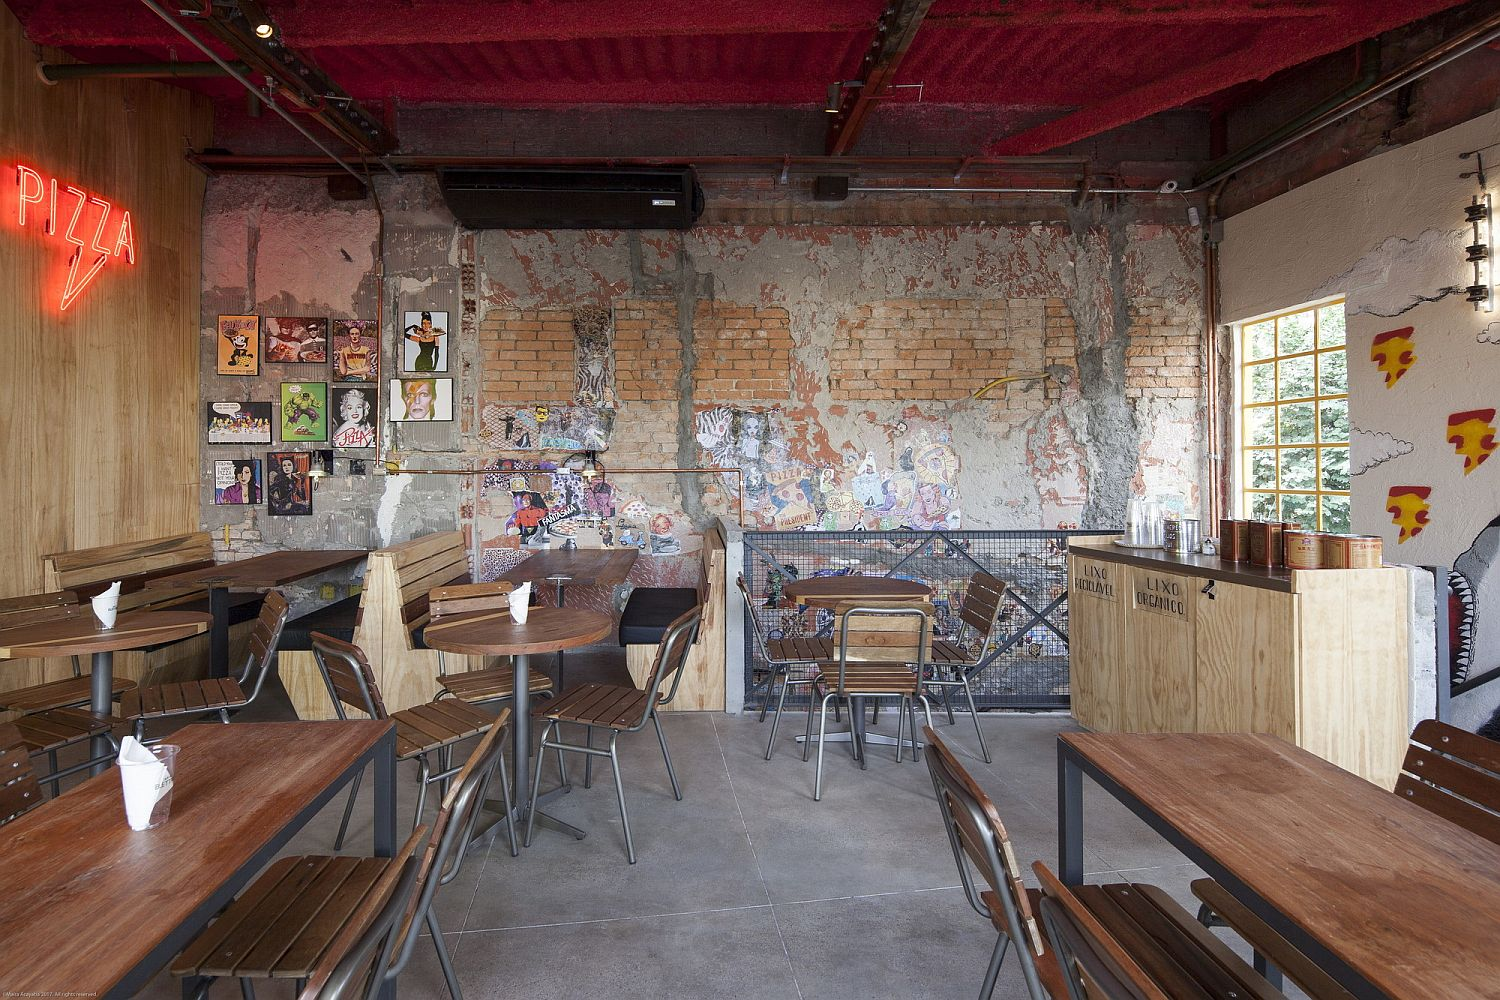 Walls-of-the-interior-with-exposed-brick-wall-sections-and-distressed-finish